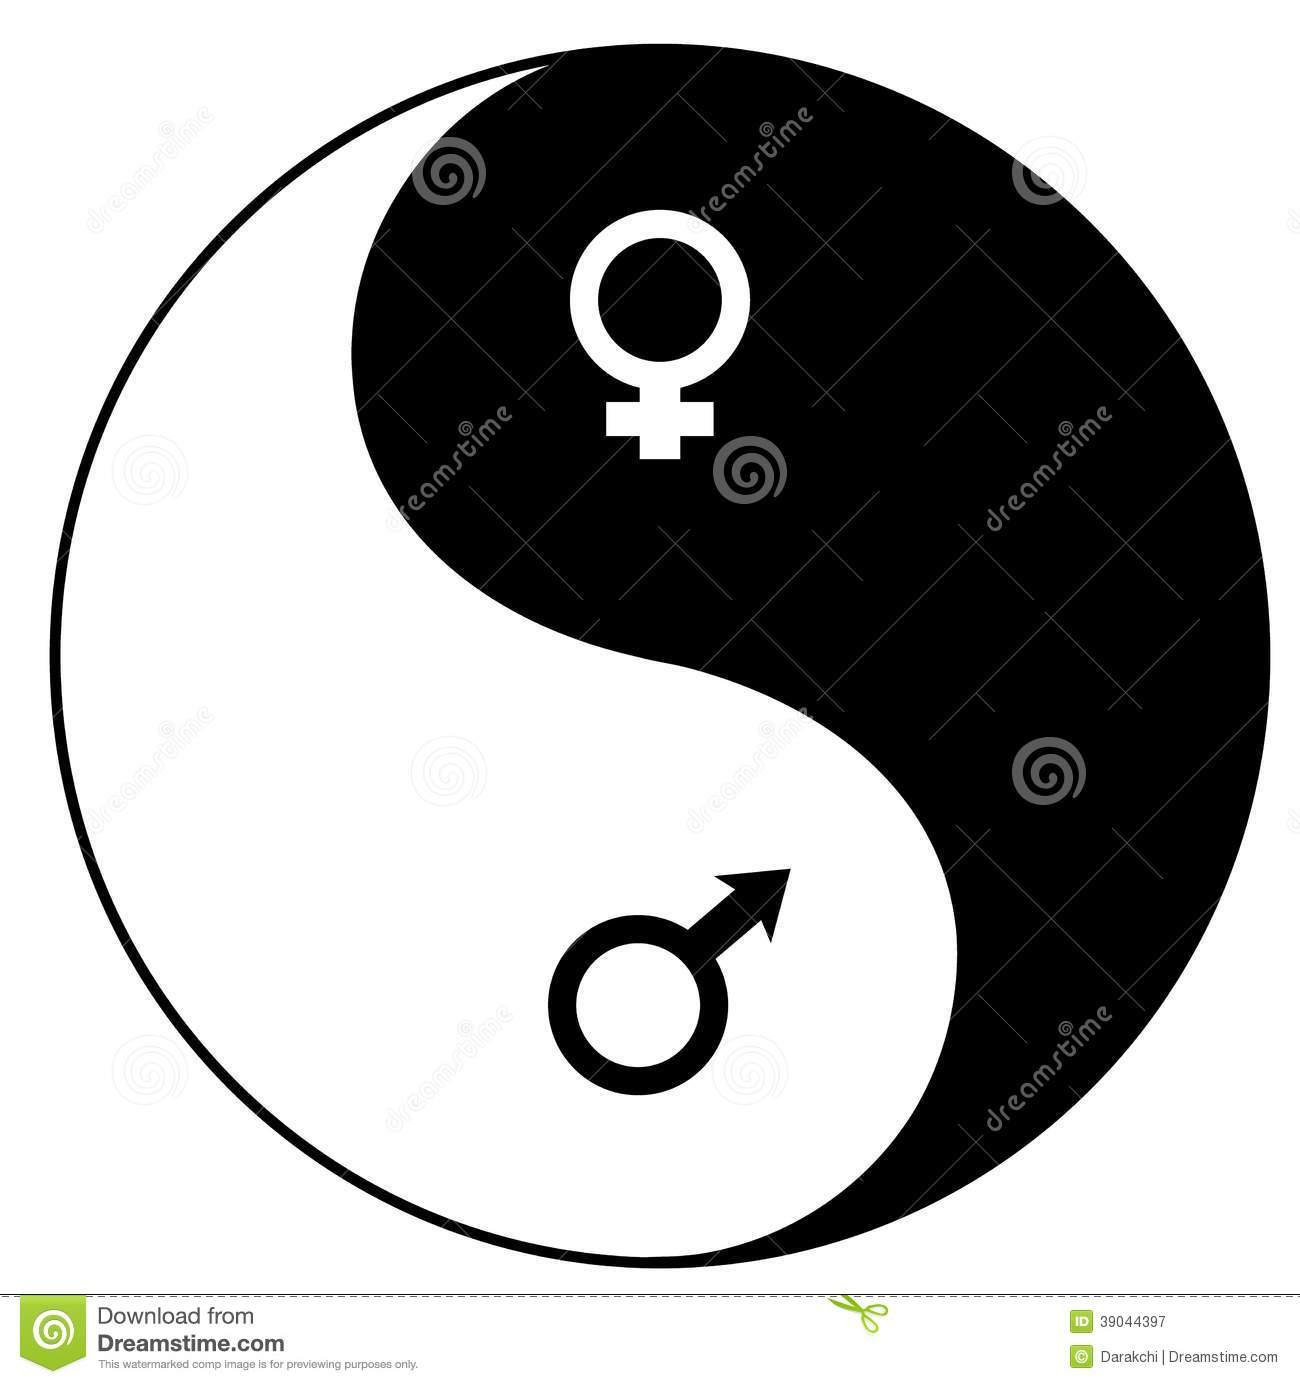 The Yin and Yang smybol are said to also represent males and females.Do you think this should play a part in describing if you're Yin or Yang?